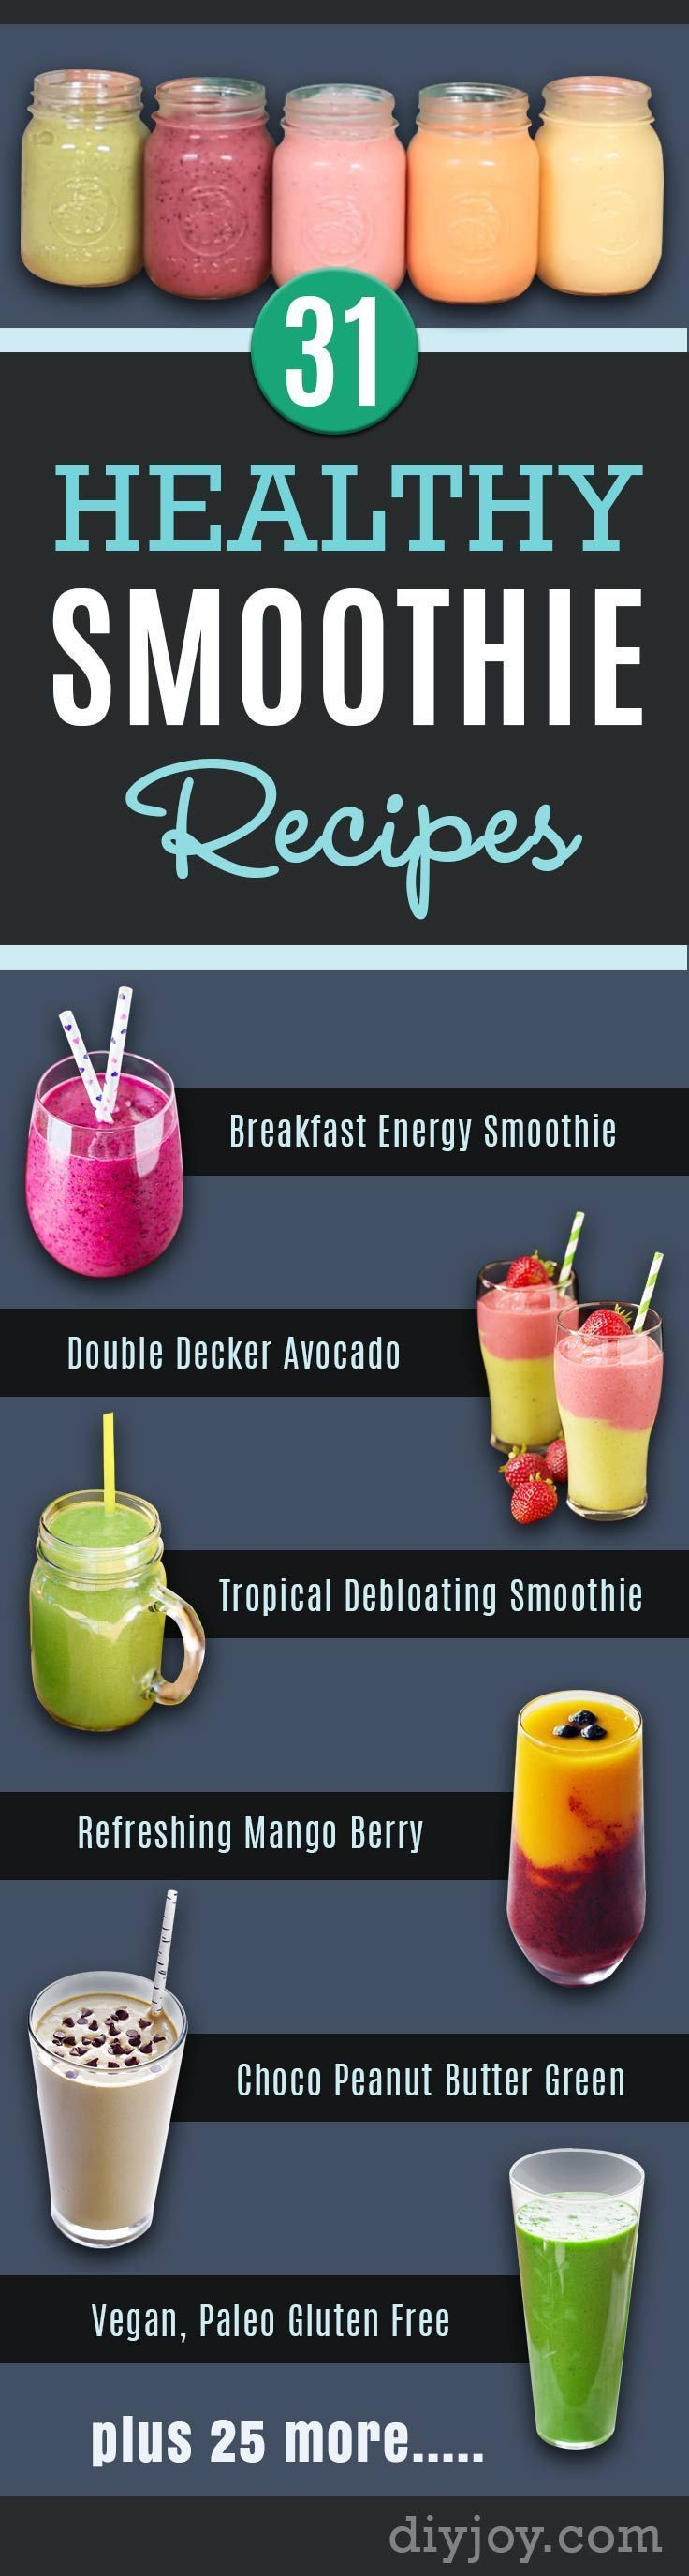 31 Healthy Smoothie Recipes - Page 6 of 6